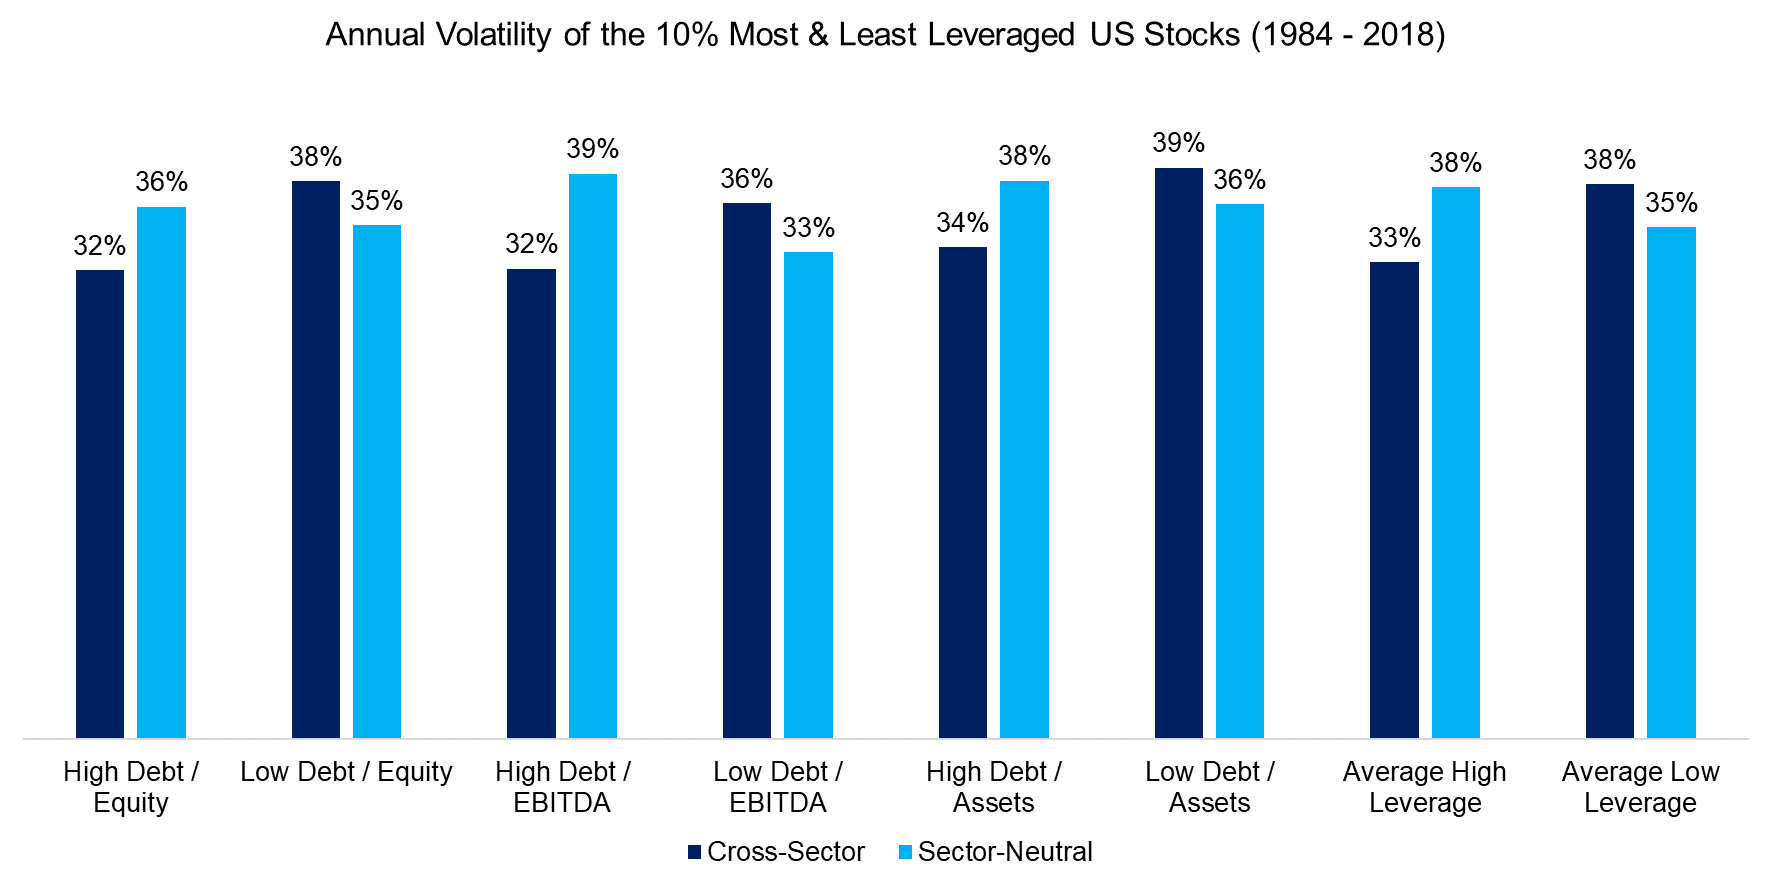 Annual Volatility of the 10% Most & Least Leveraged US Stocks (1984 - 2018)